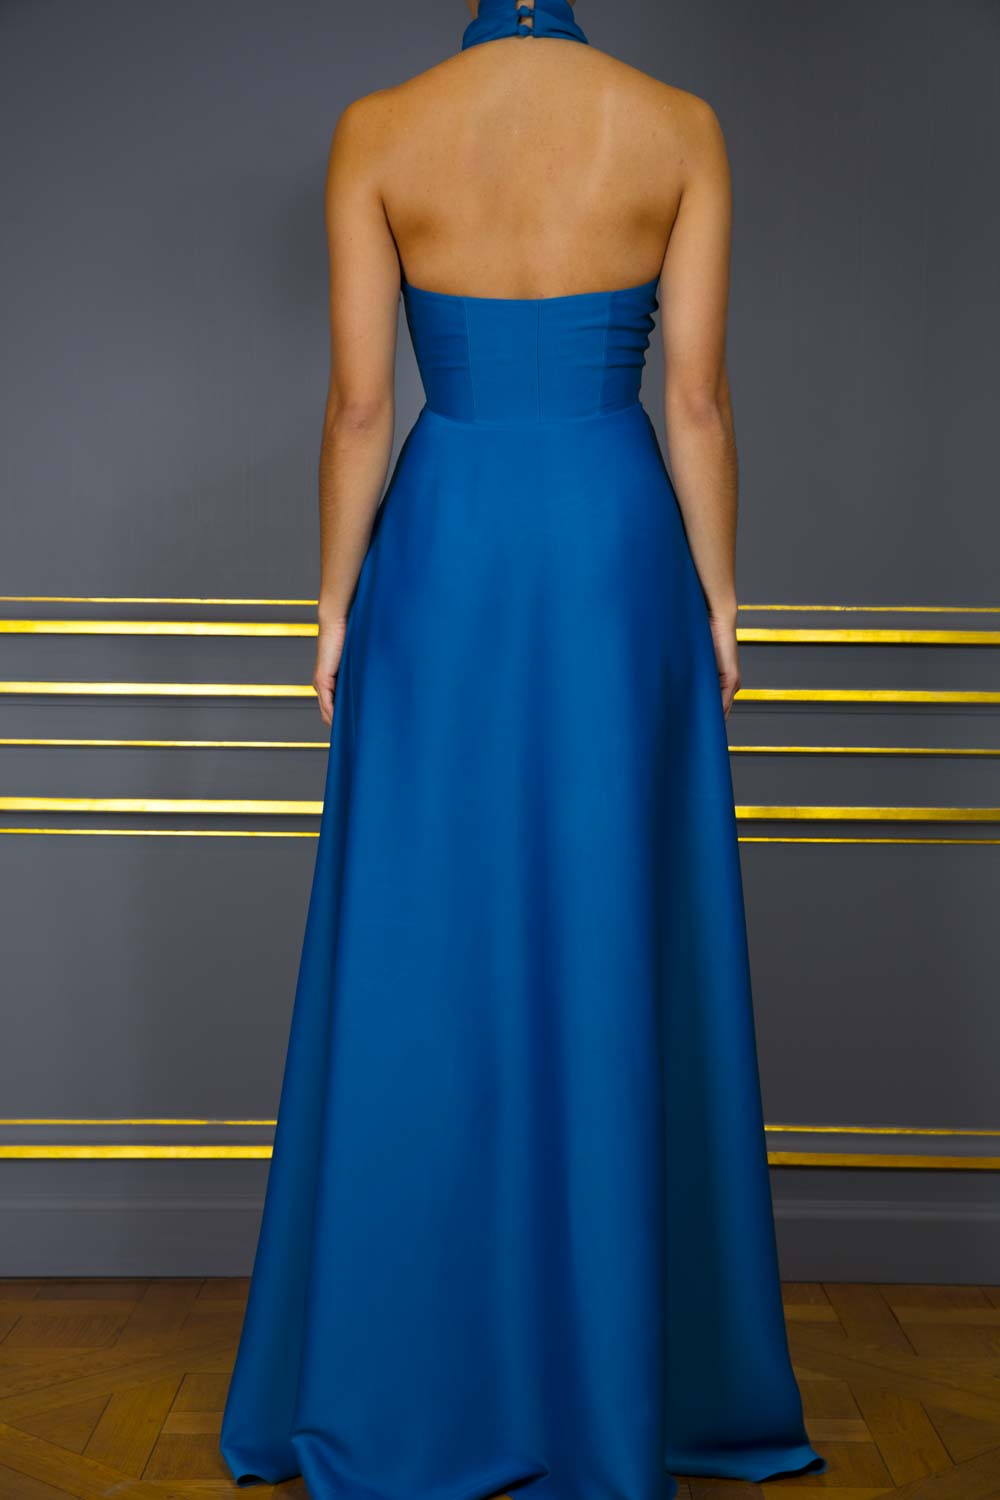 Cerulean blue halter-neck gown with crossover bodice